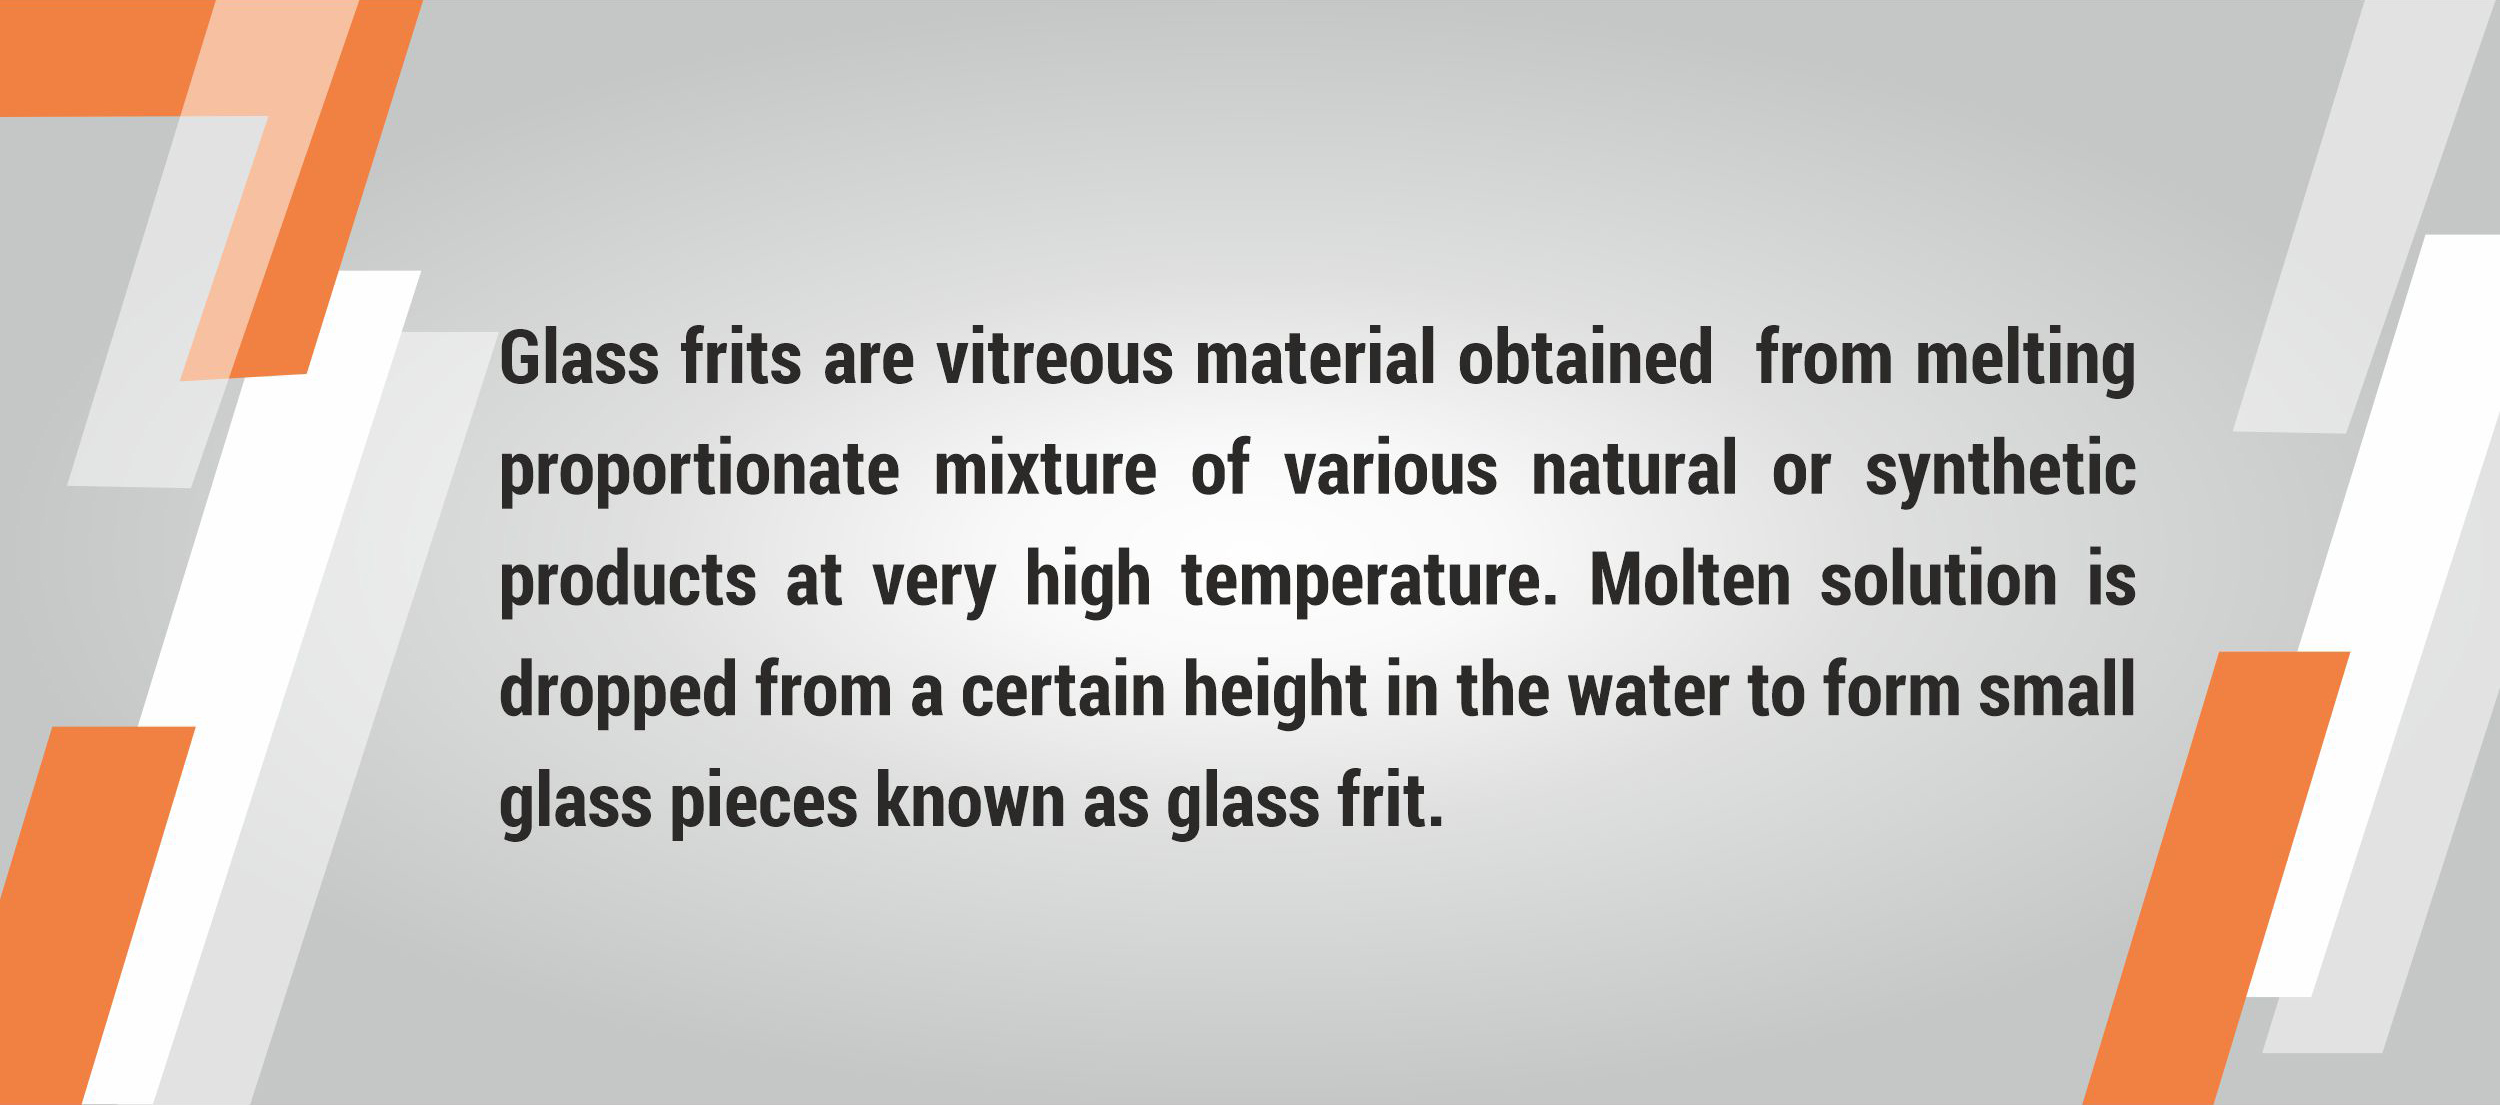 What is glass frit